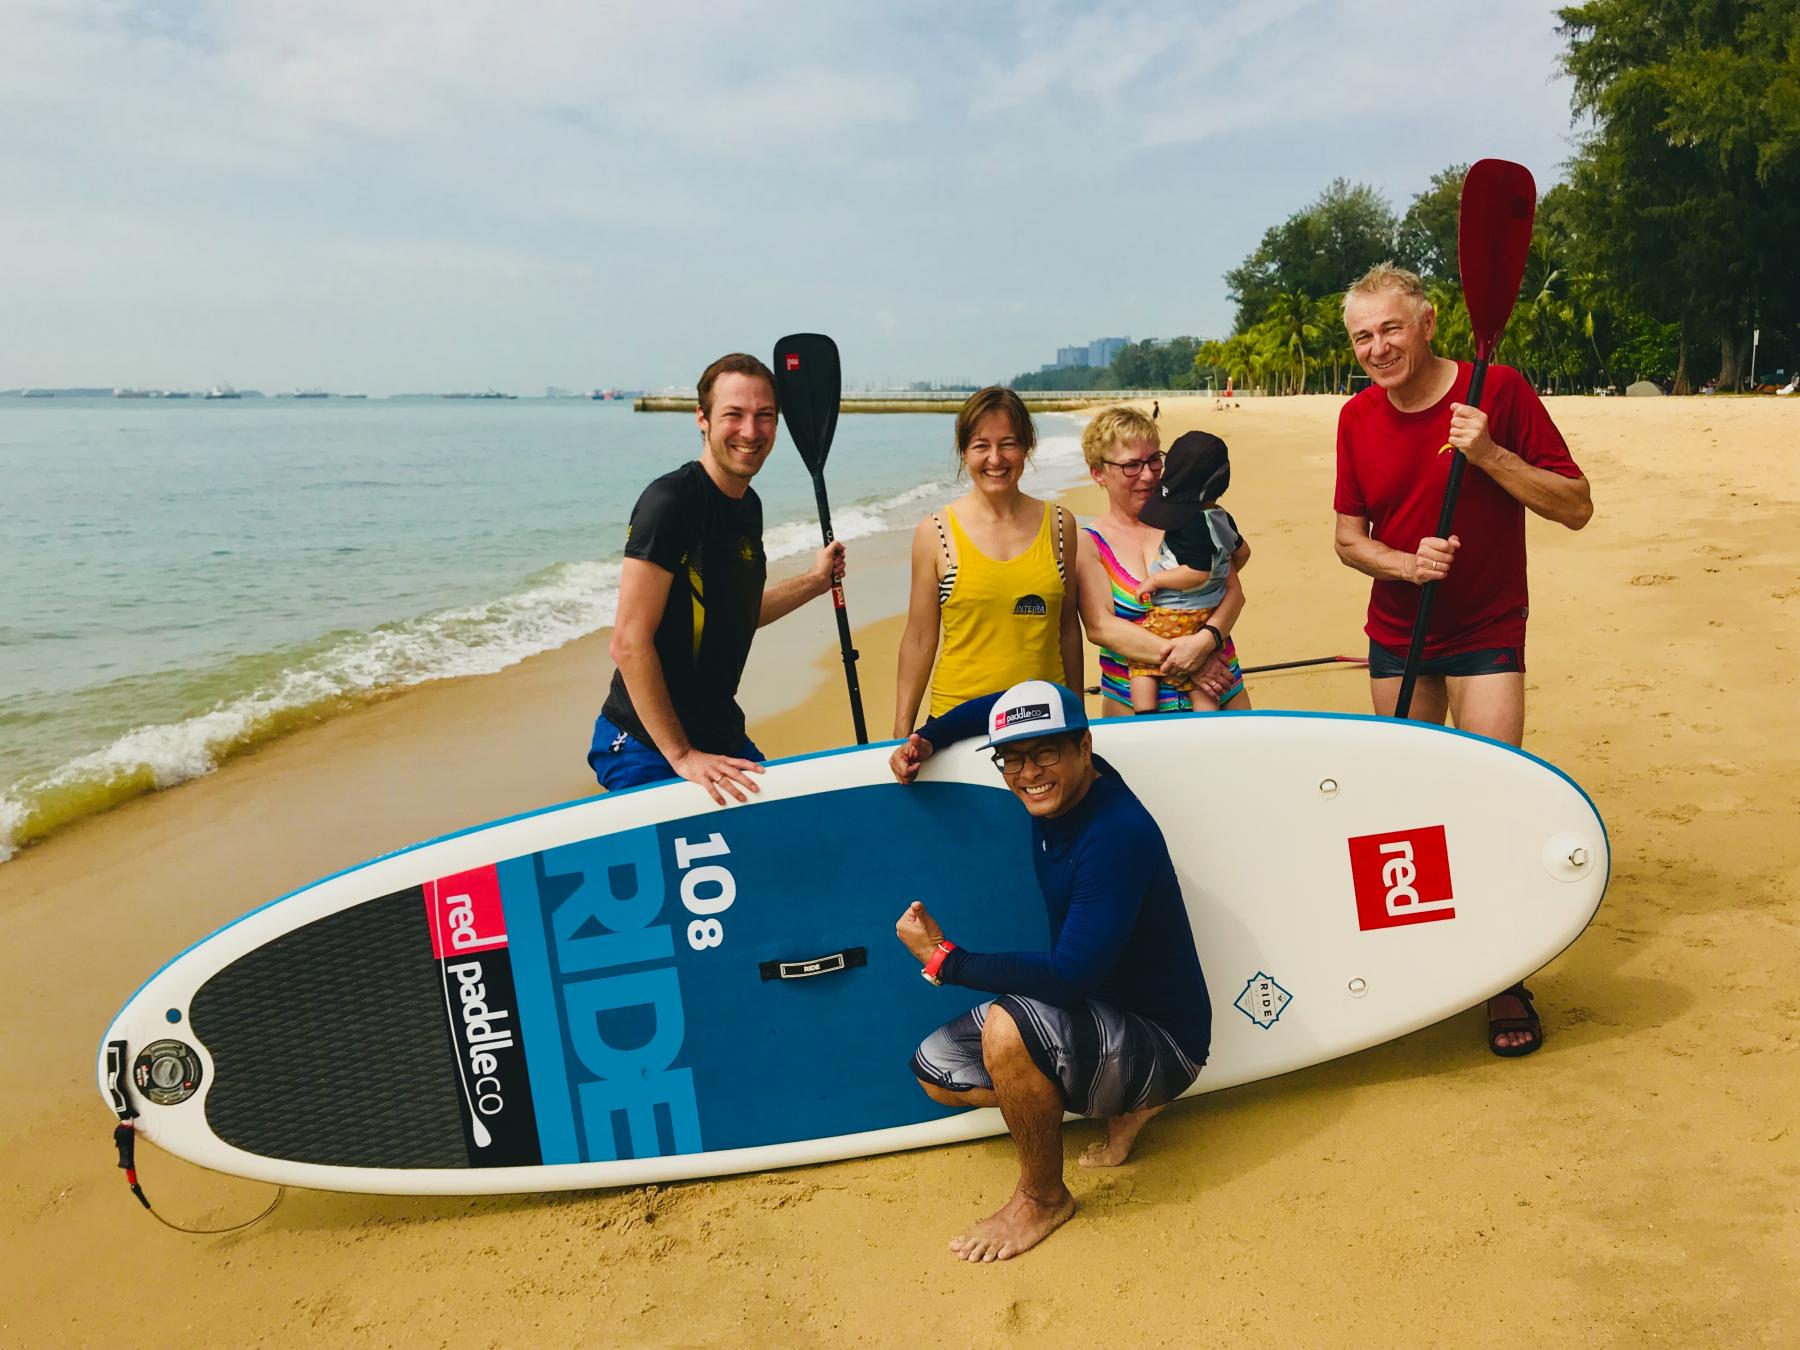 Let's learn paddleboarding at East Coast Park! starting at 920 East Coast Parkway, Singapore